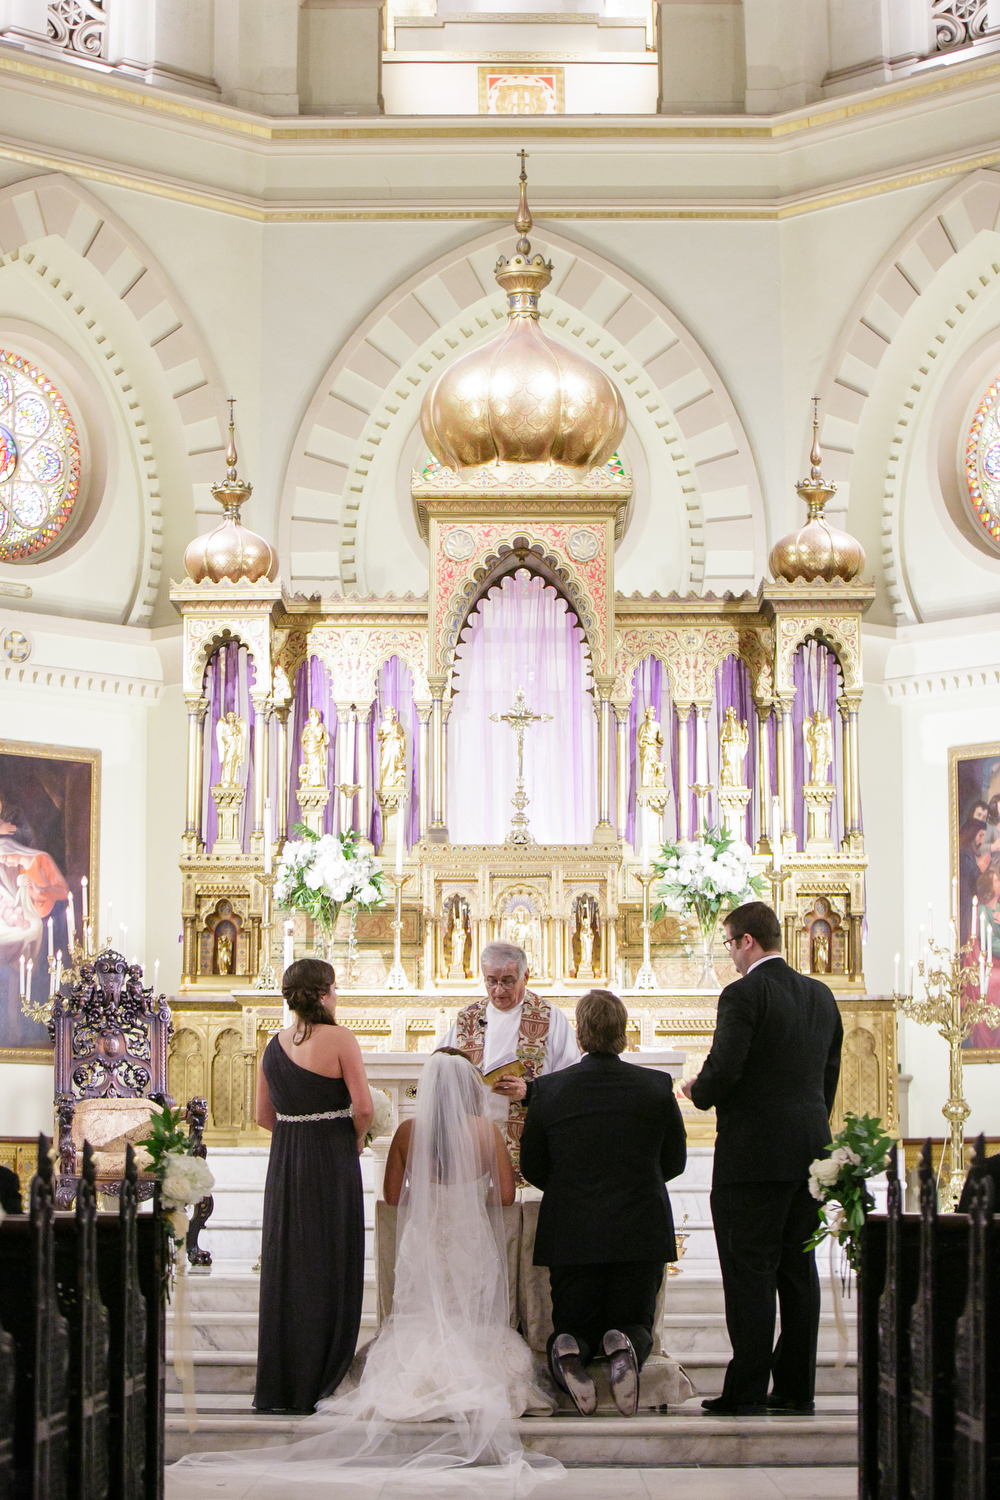 Immaculate Conception Jesuit Church | ICJC | Catholic wedding ceremony | Advent wedding ceremony | How to transform an open ballroom with stunning decor | Sapphire Events | Greer G Photography | Board of Trade | White and Gold Wedding | Winter Wedding Inspiration | White and Green Wedding | Ballroom wedding